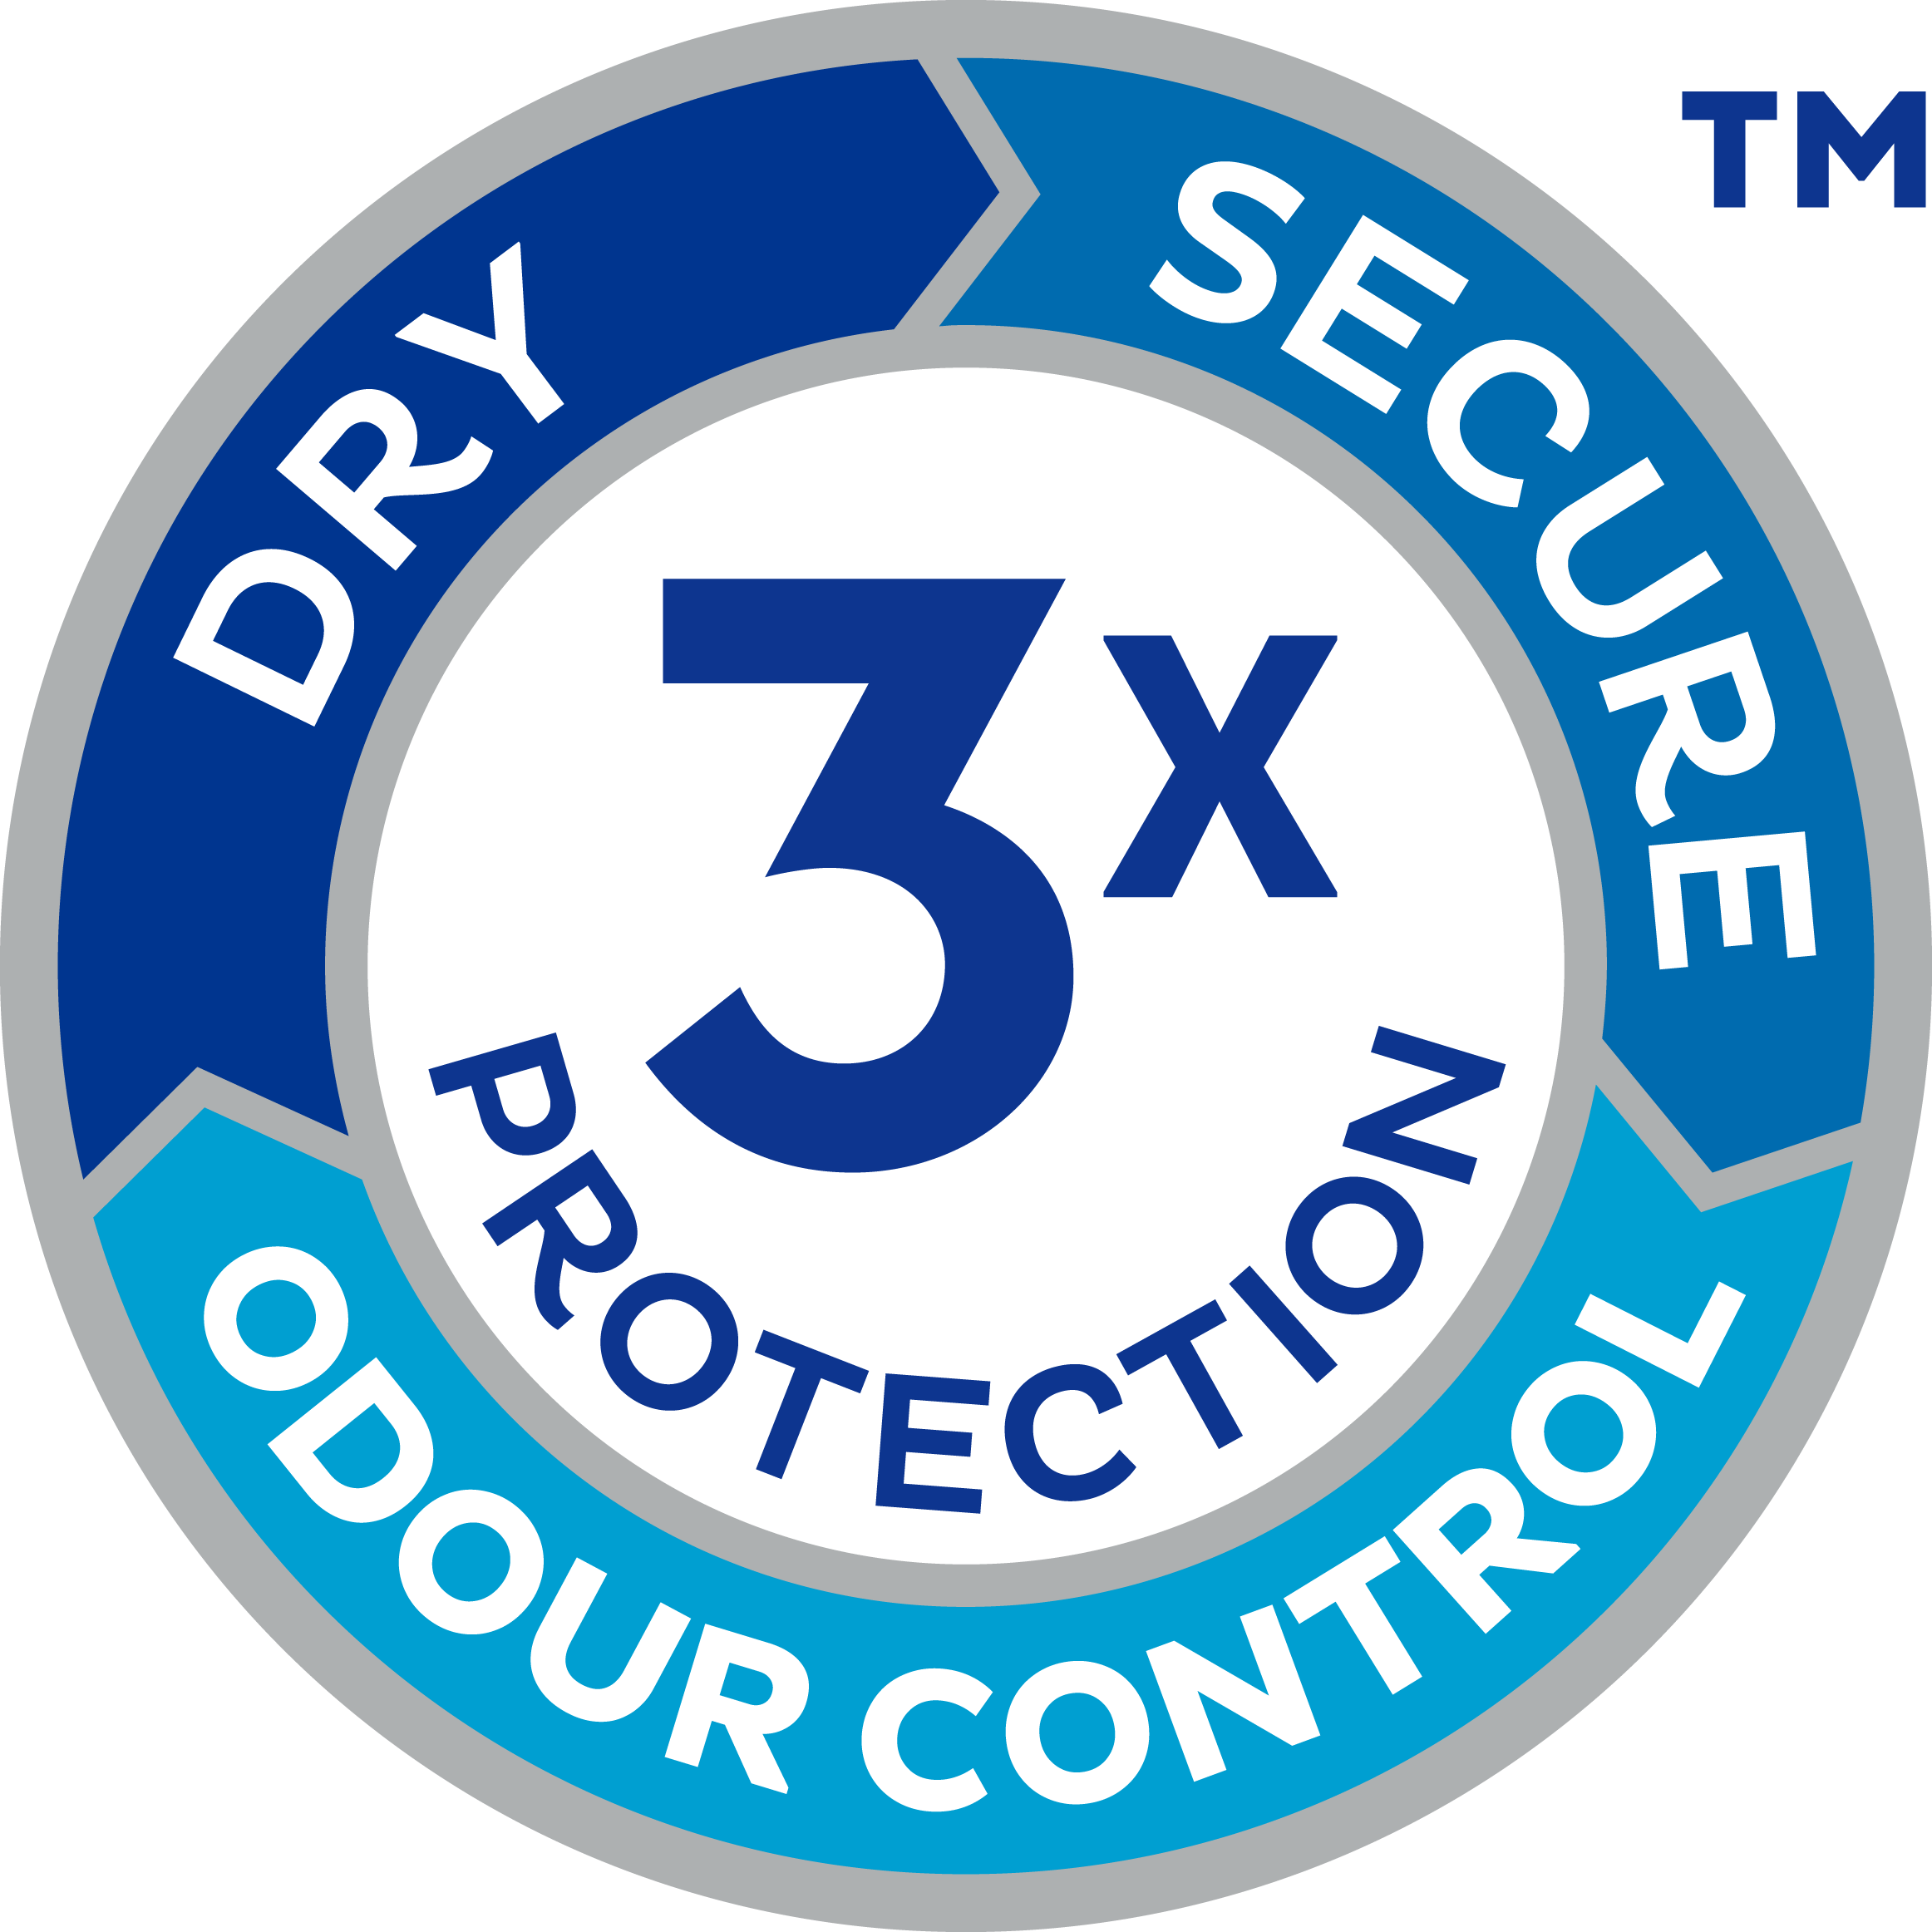 Triple protection for dryness, odour control and leakage security